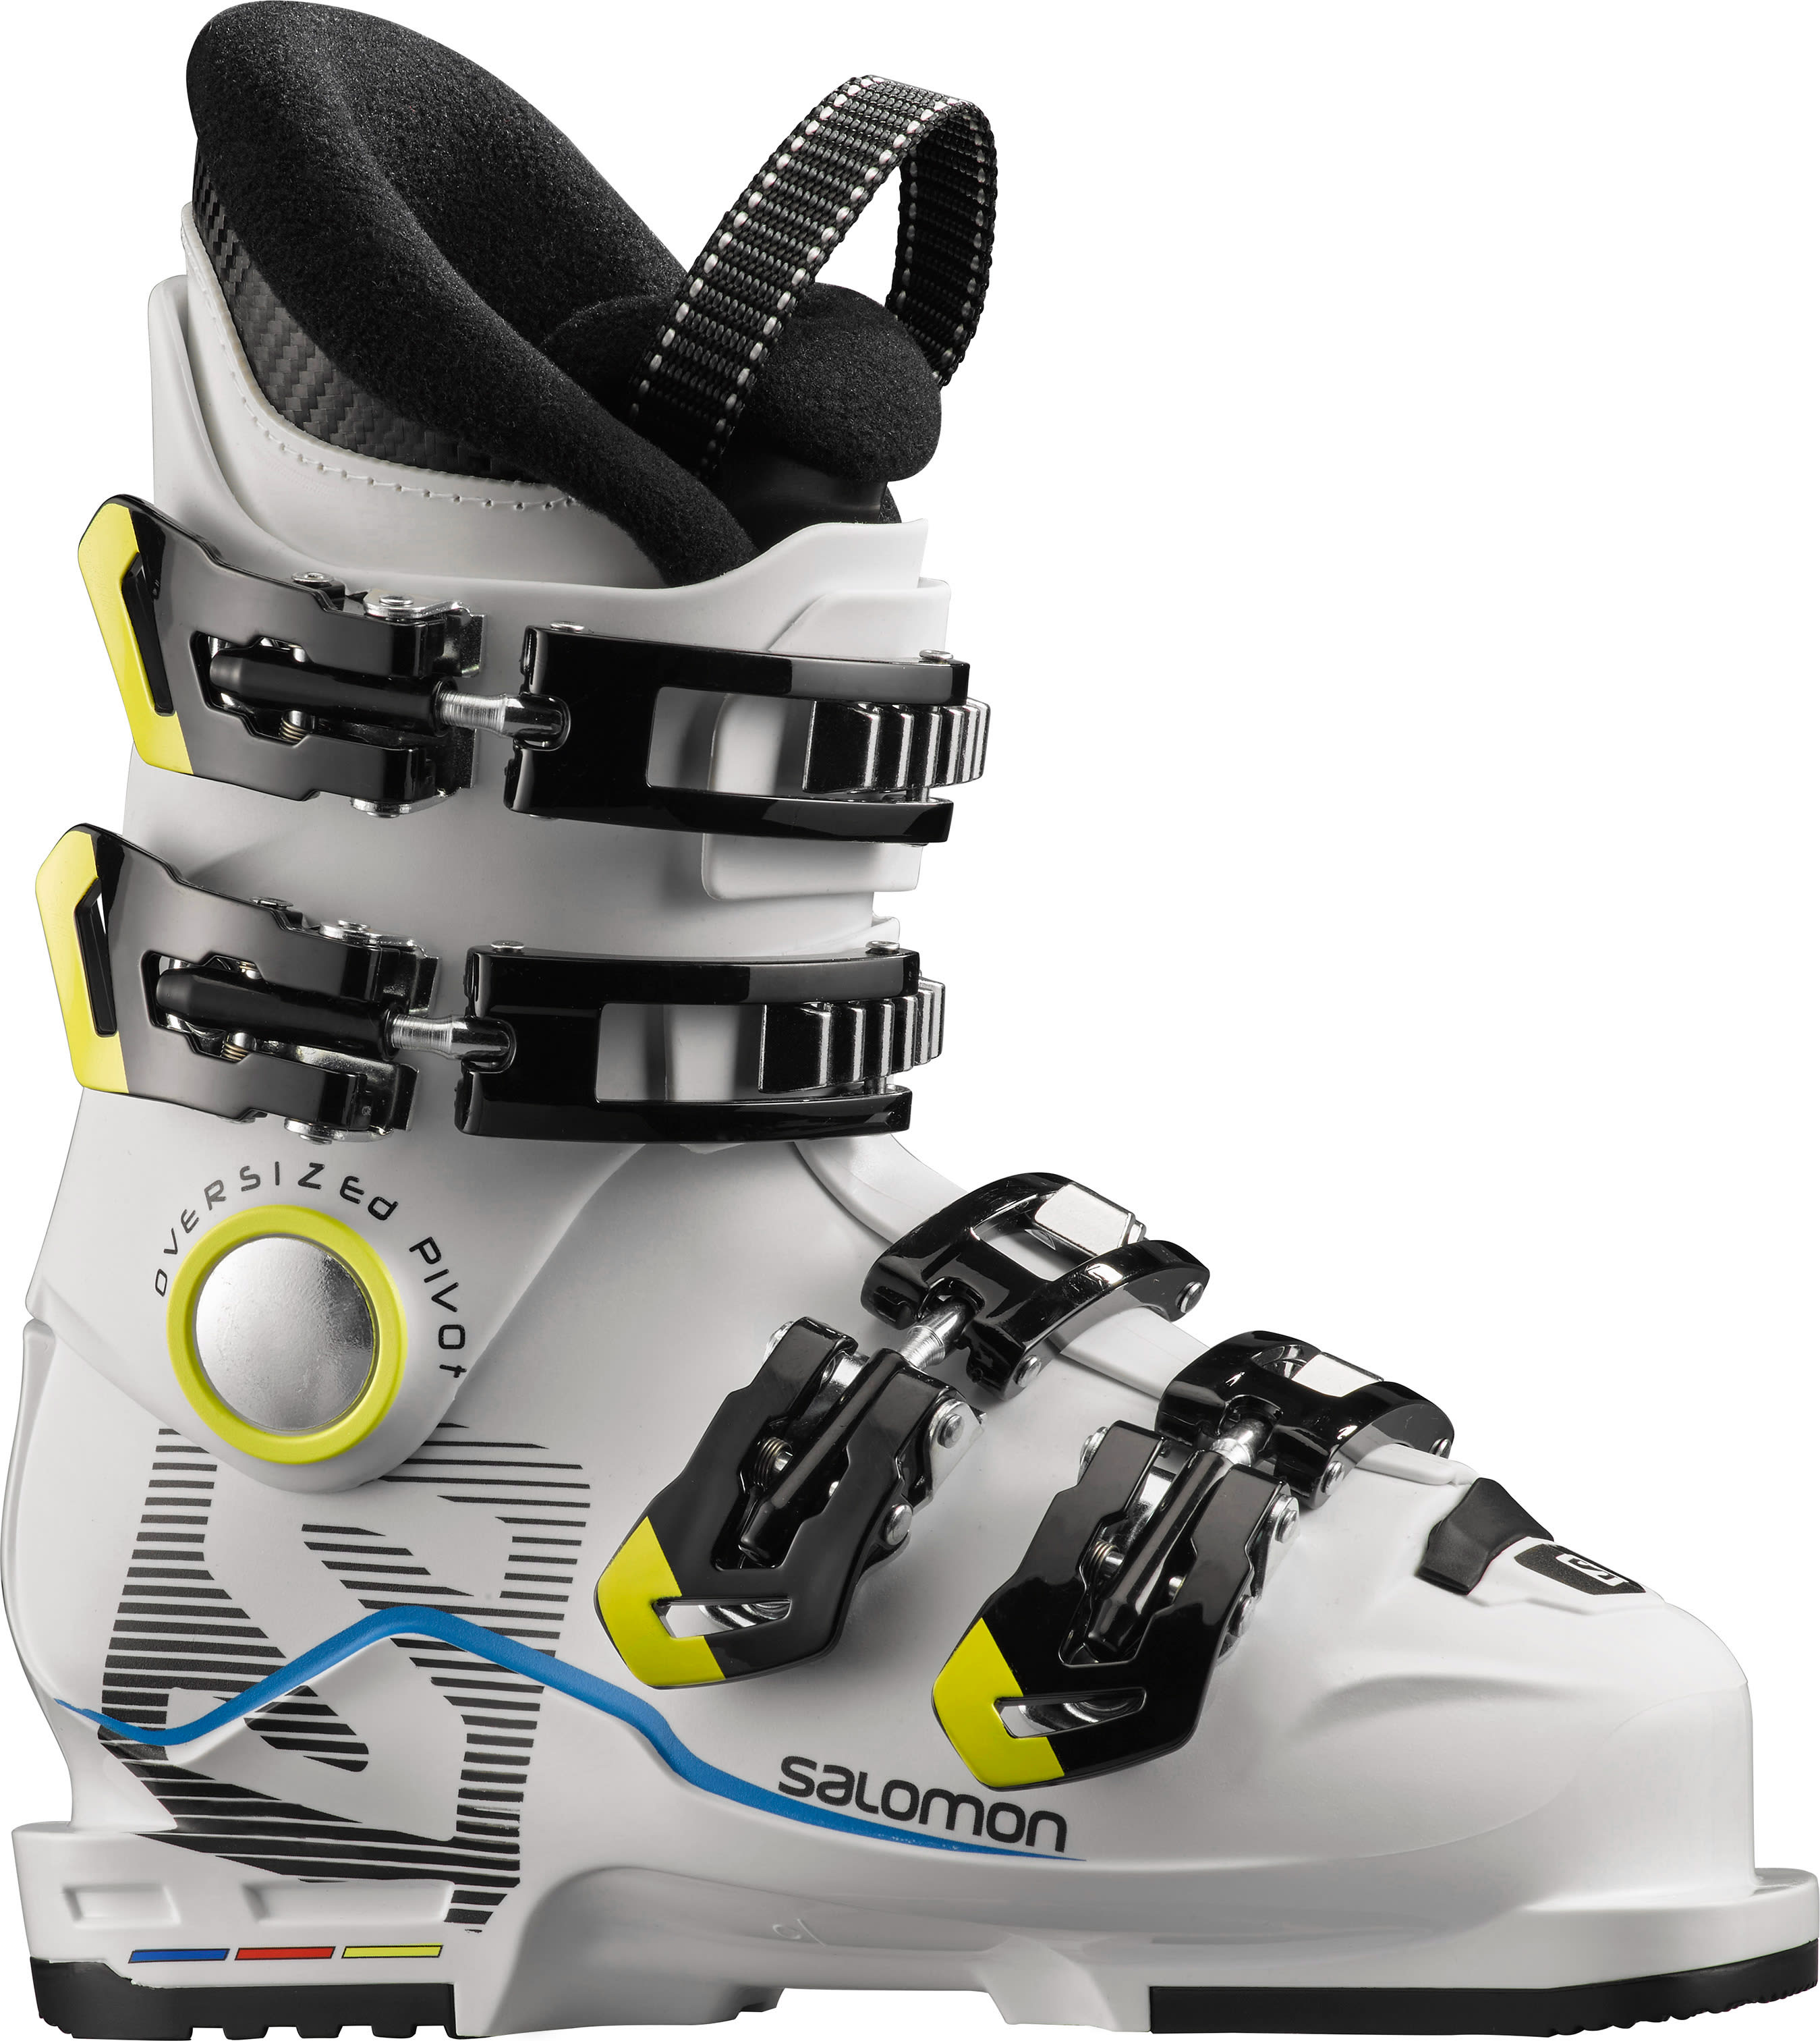 Salomon X Max 60t Ski Boots Kids Youth 2018